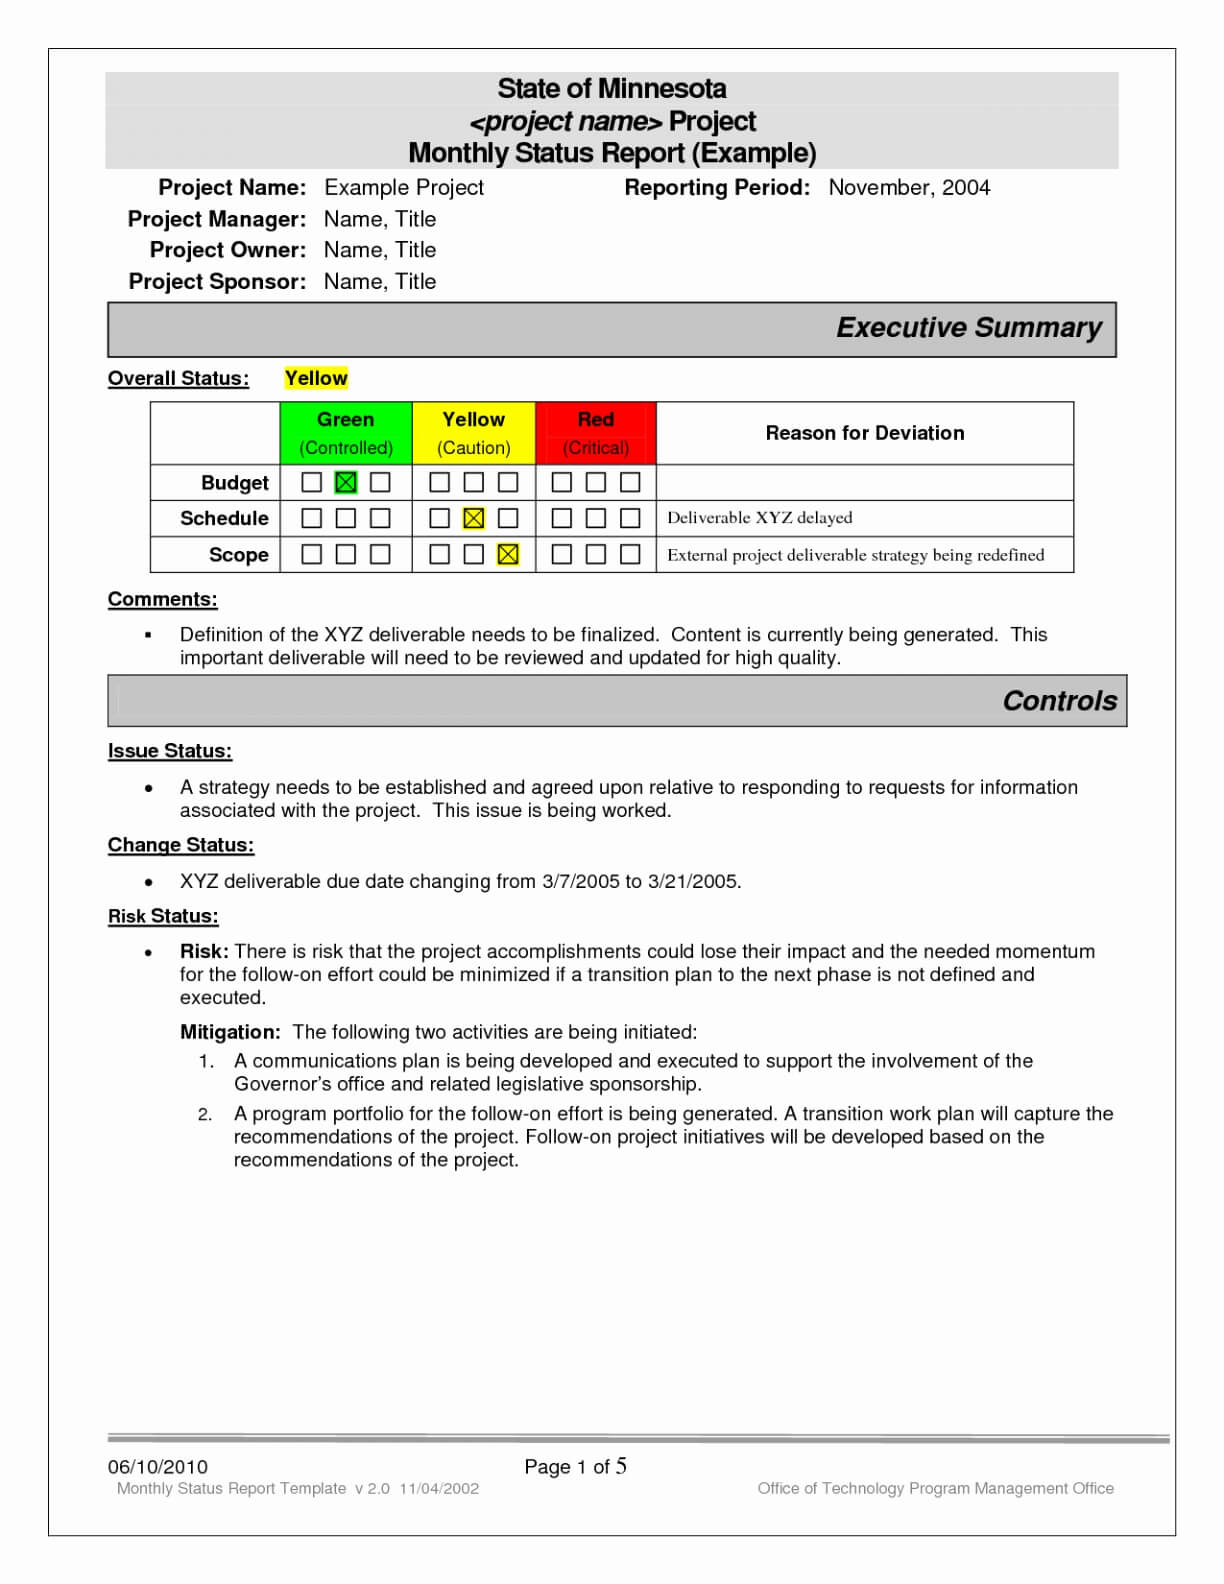 018 Project Status Report Template Excel Software Testing Regarding Project Status Report Template Word 2010